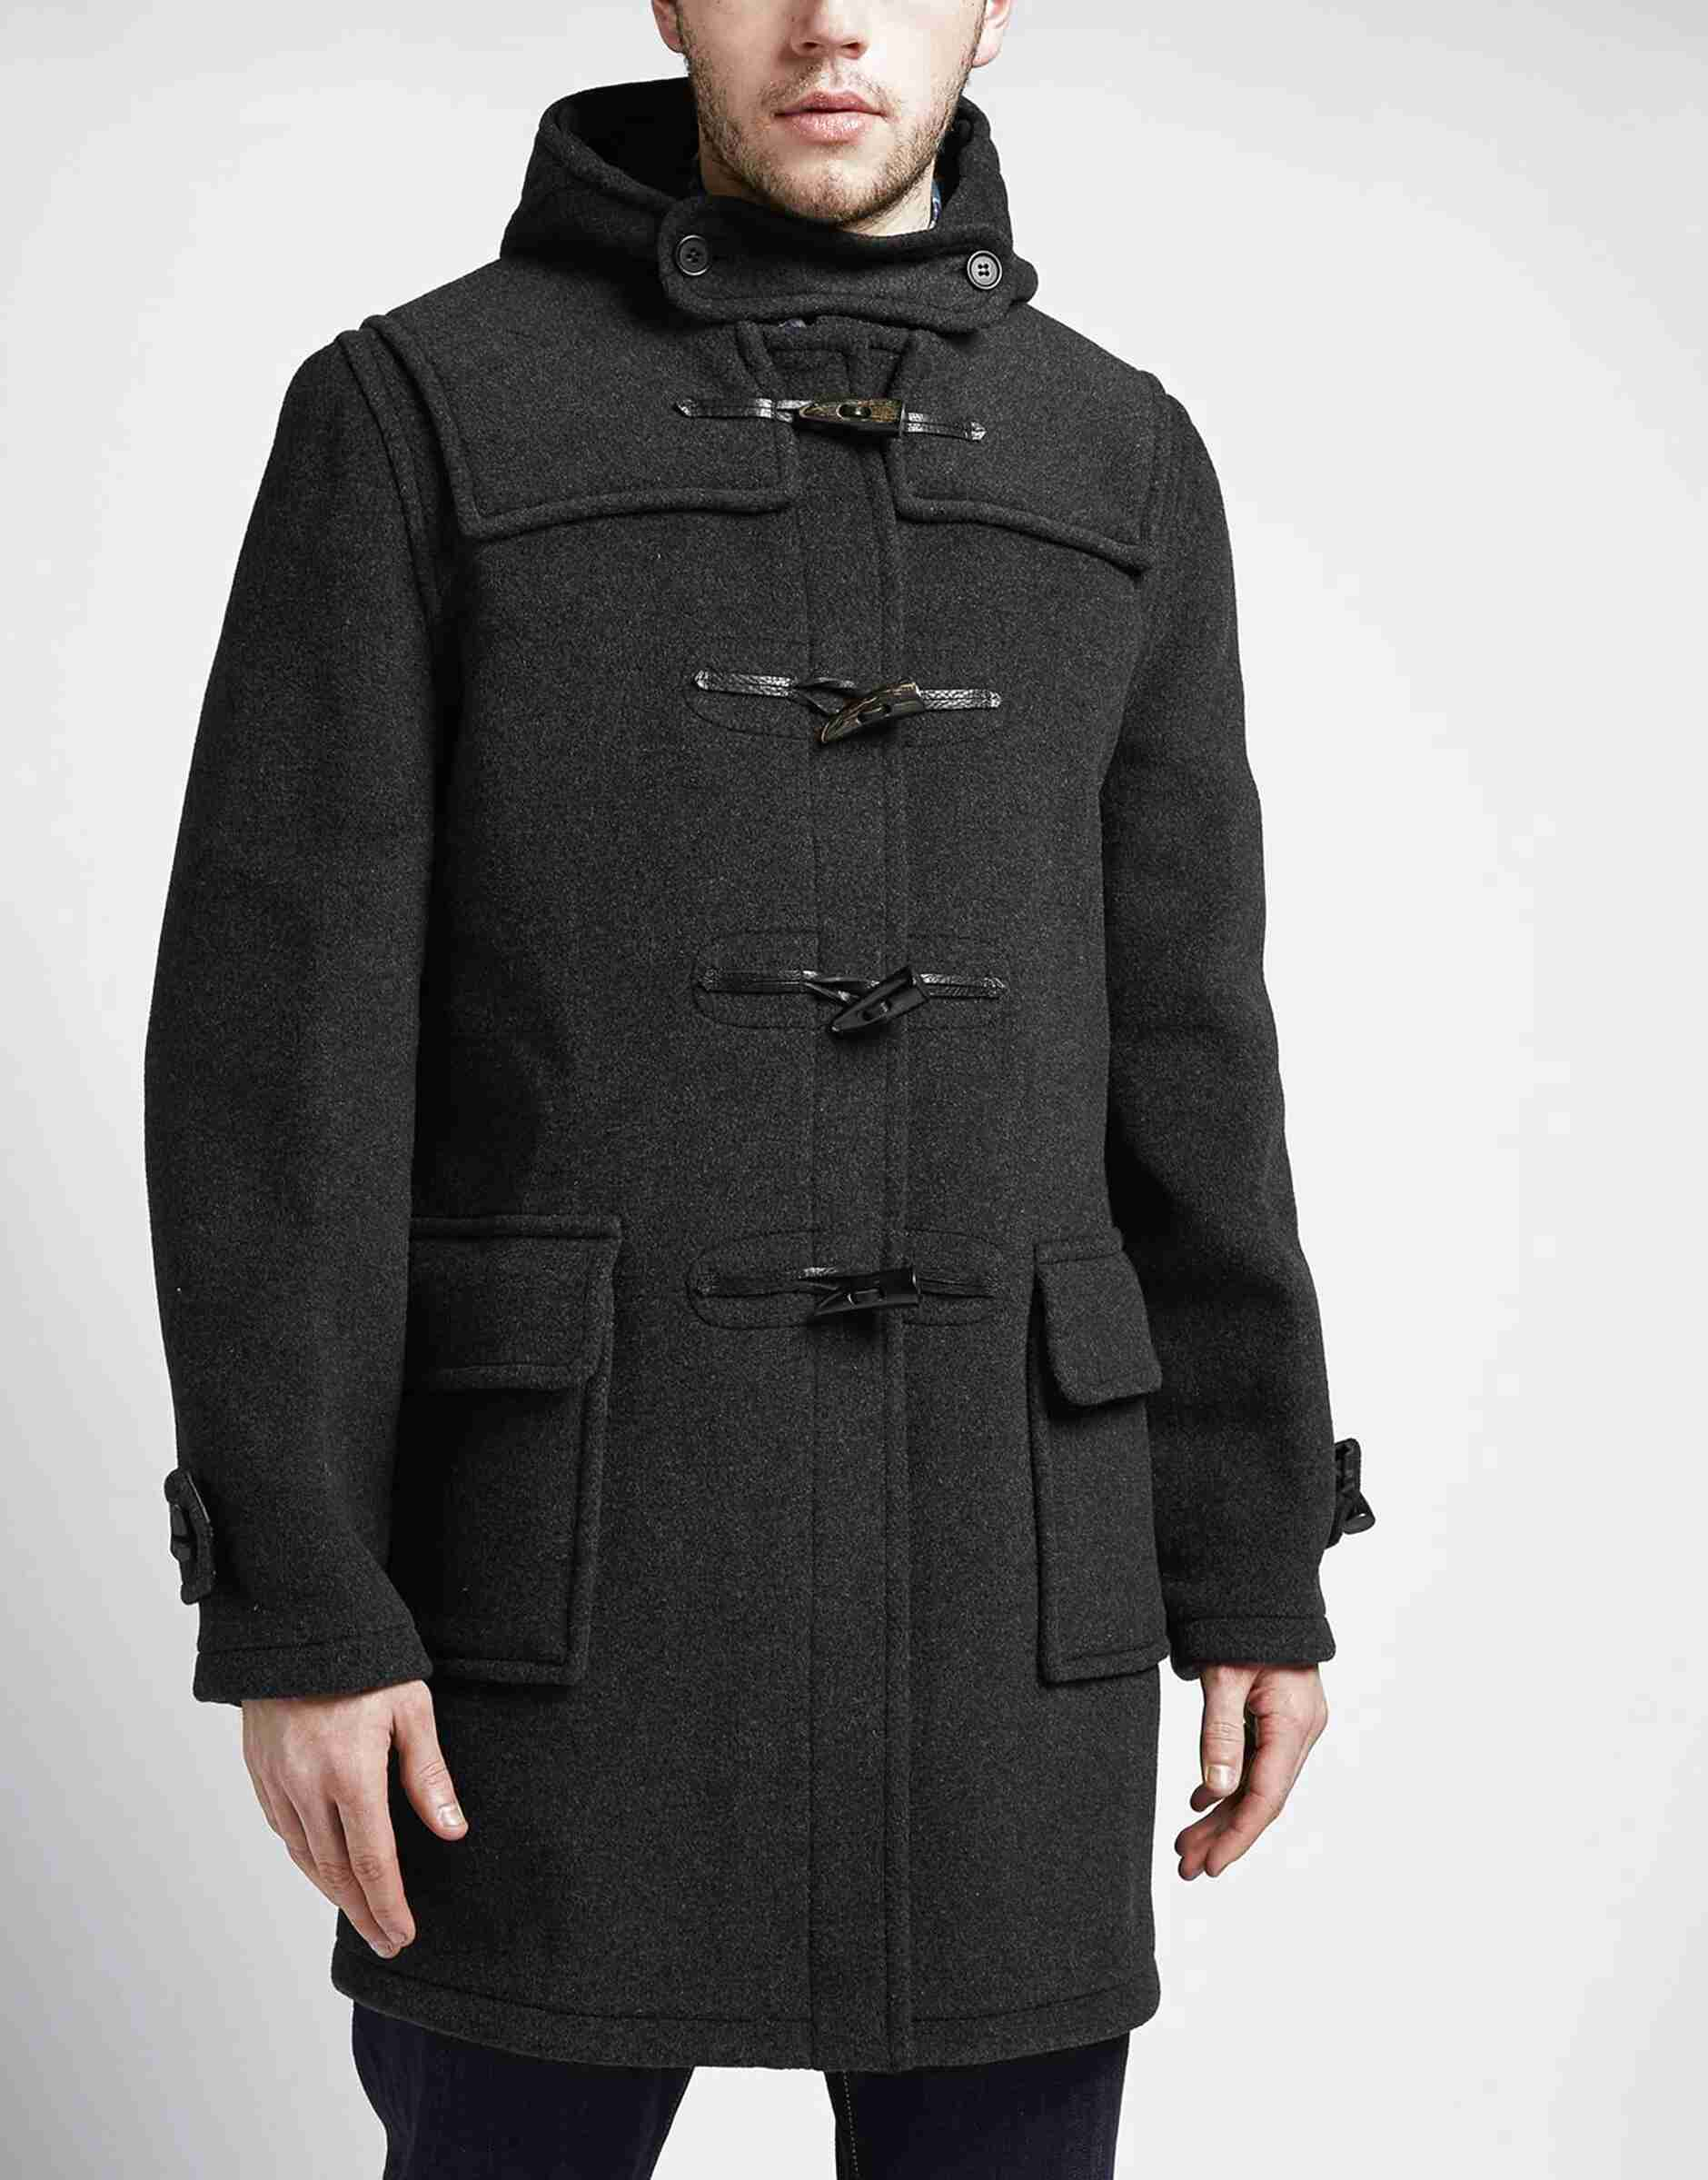 gloverall duffle coat for sale